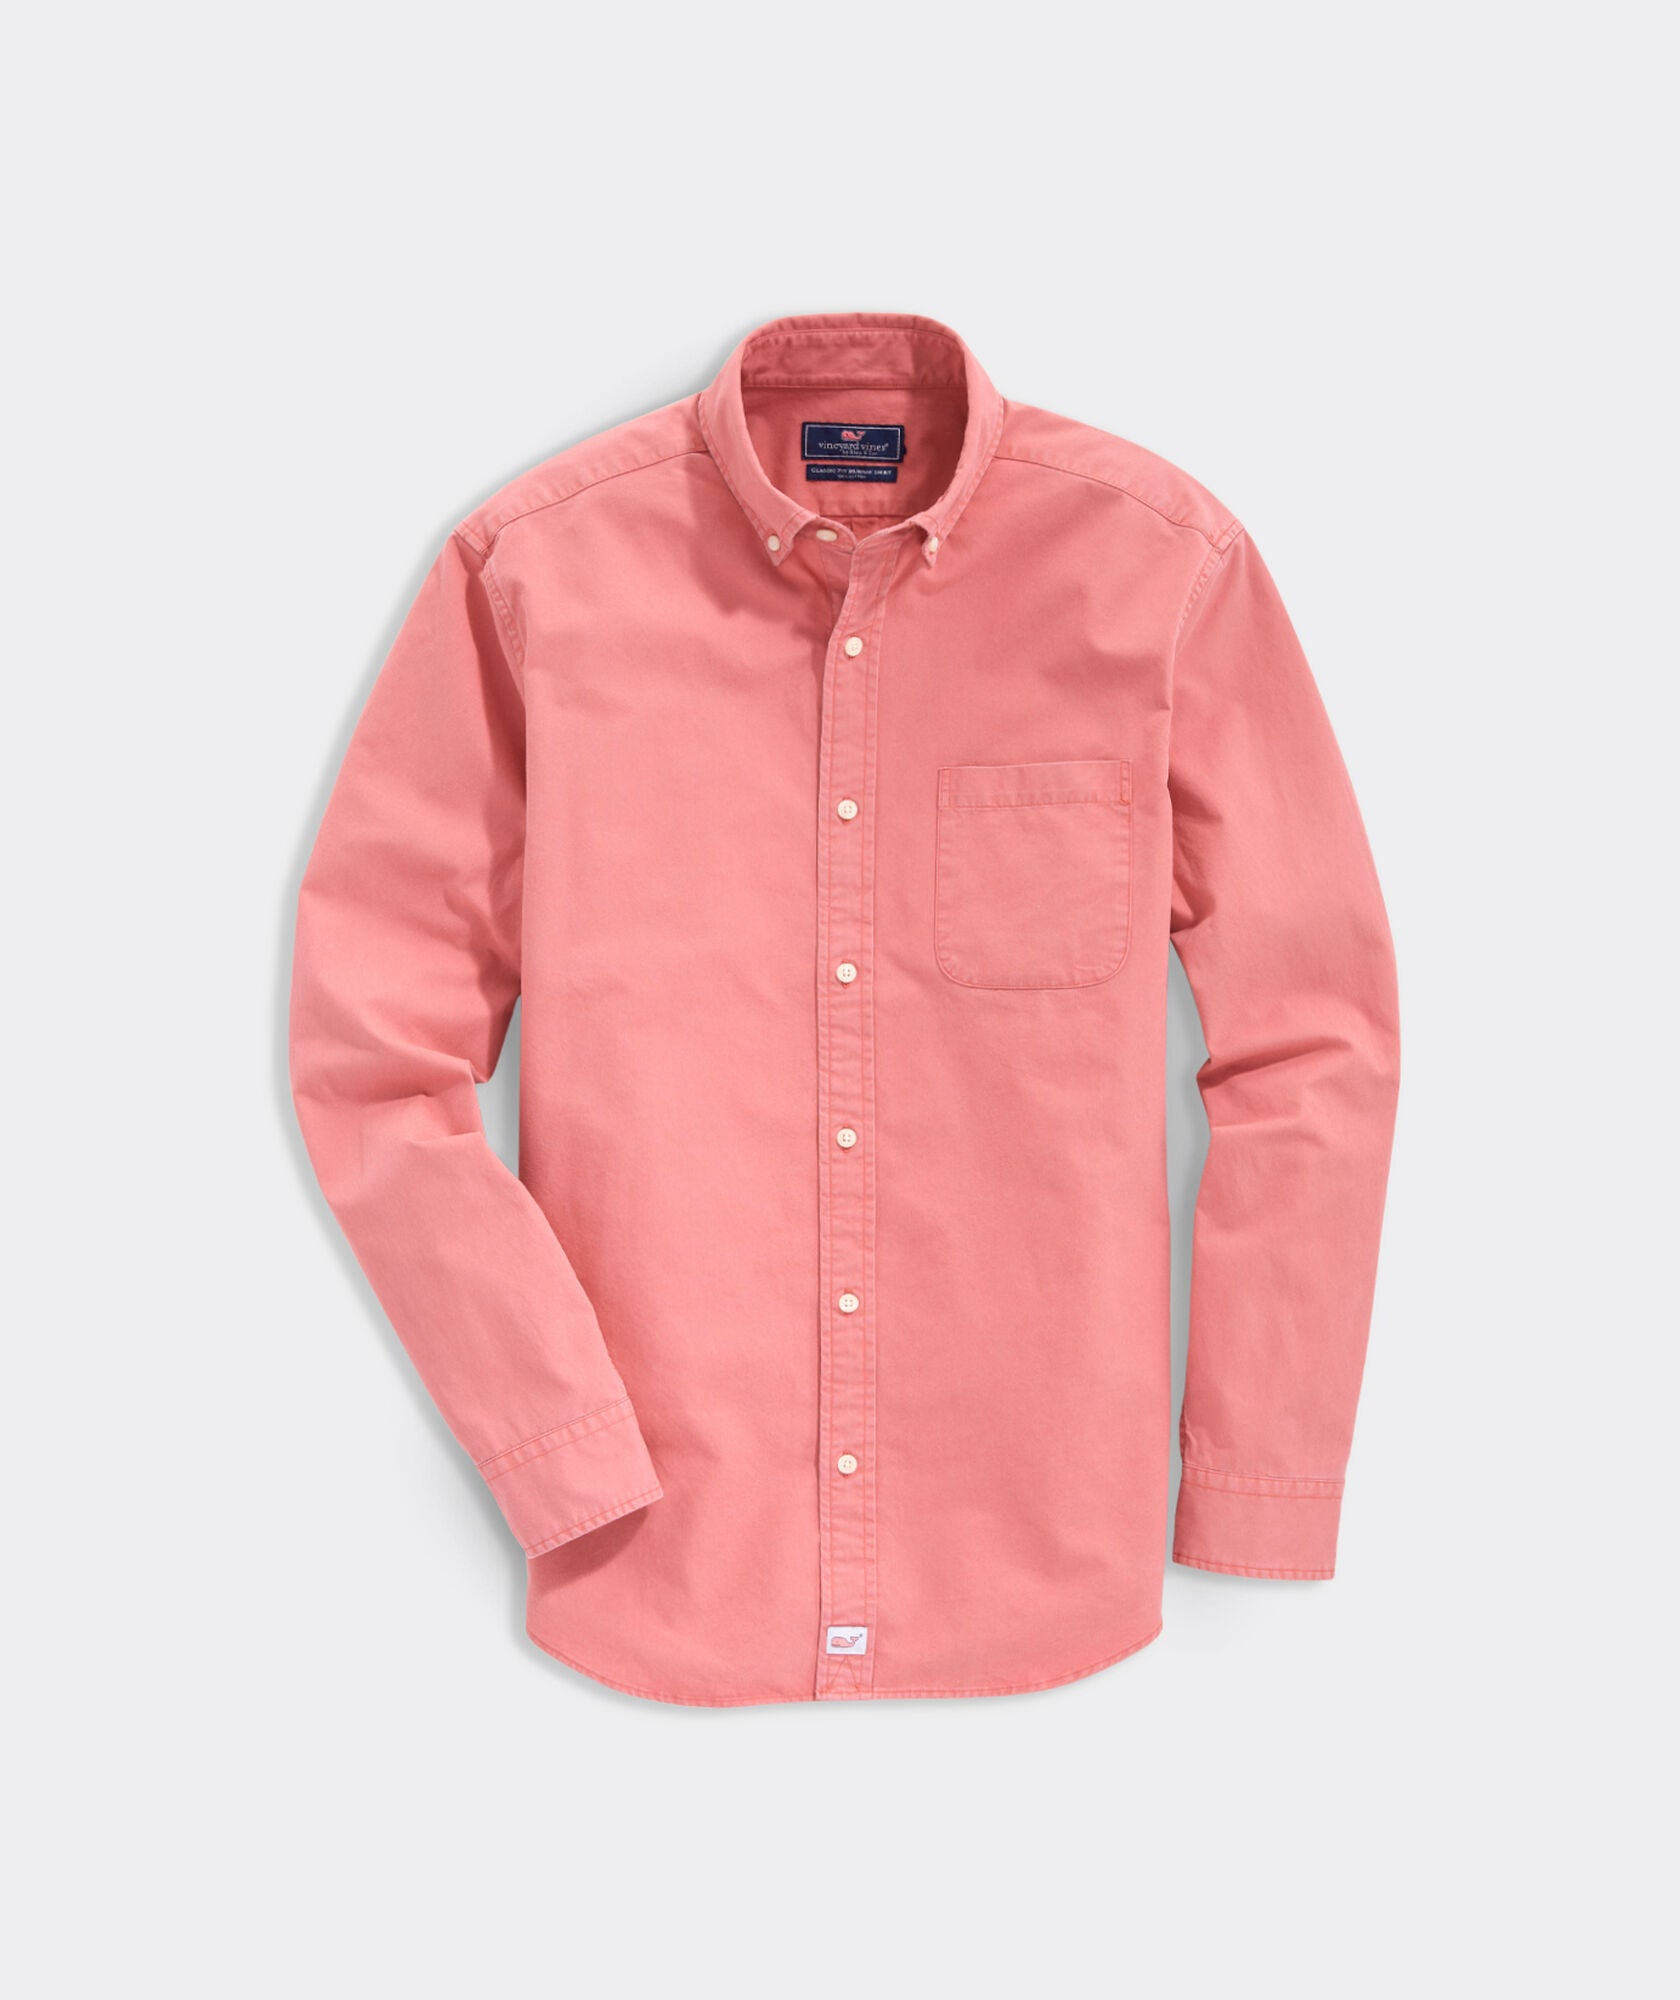 Vineyard Vines Classic Fit Solid Twill Murray Button-Down Shirt - Red Sky